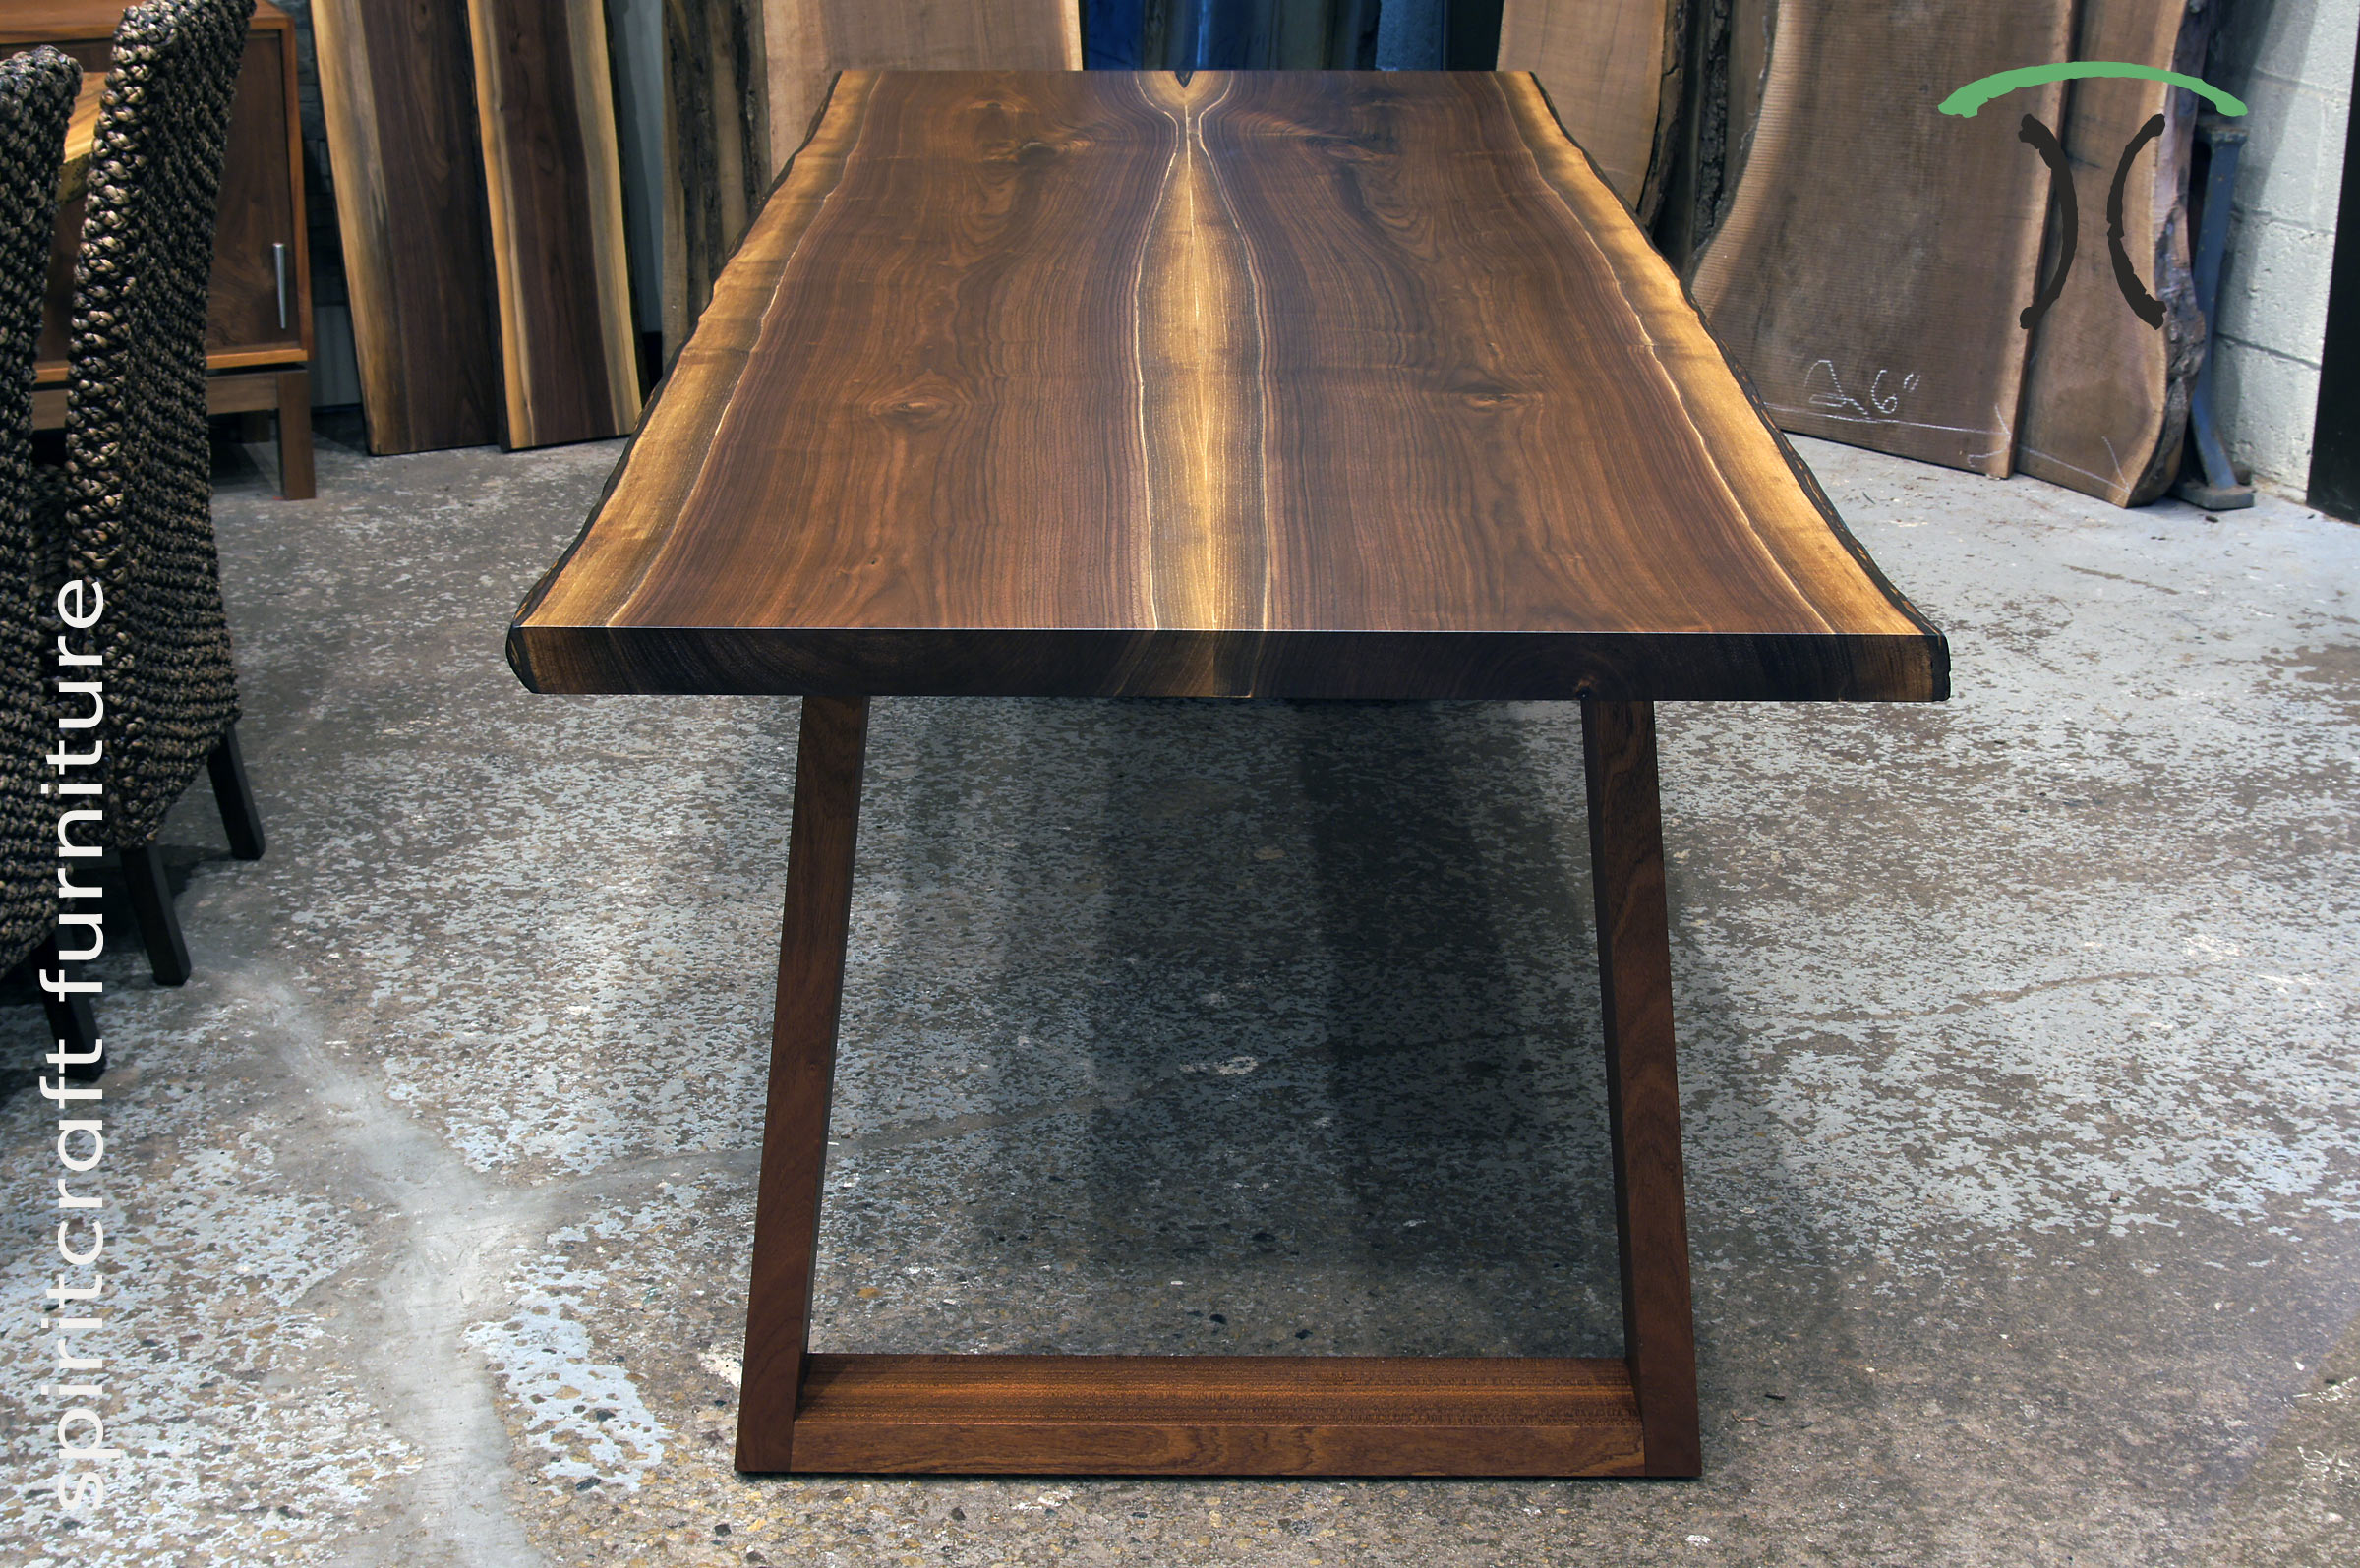 Living edge dining and conference tables in solid Black Walnut from kiln dried slabs on display at our live edge furniture store in Chicago area, East Dundee, Illinois